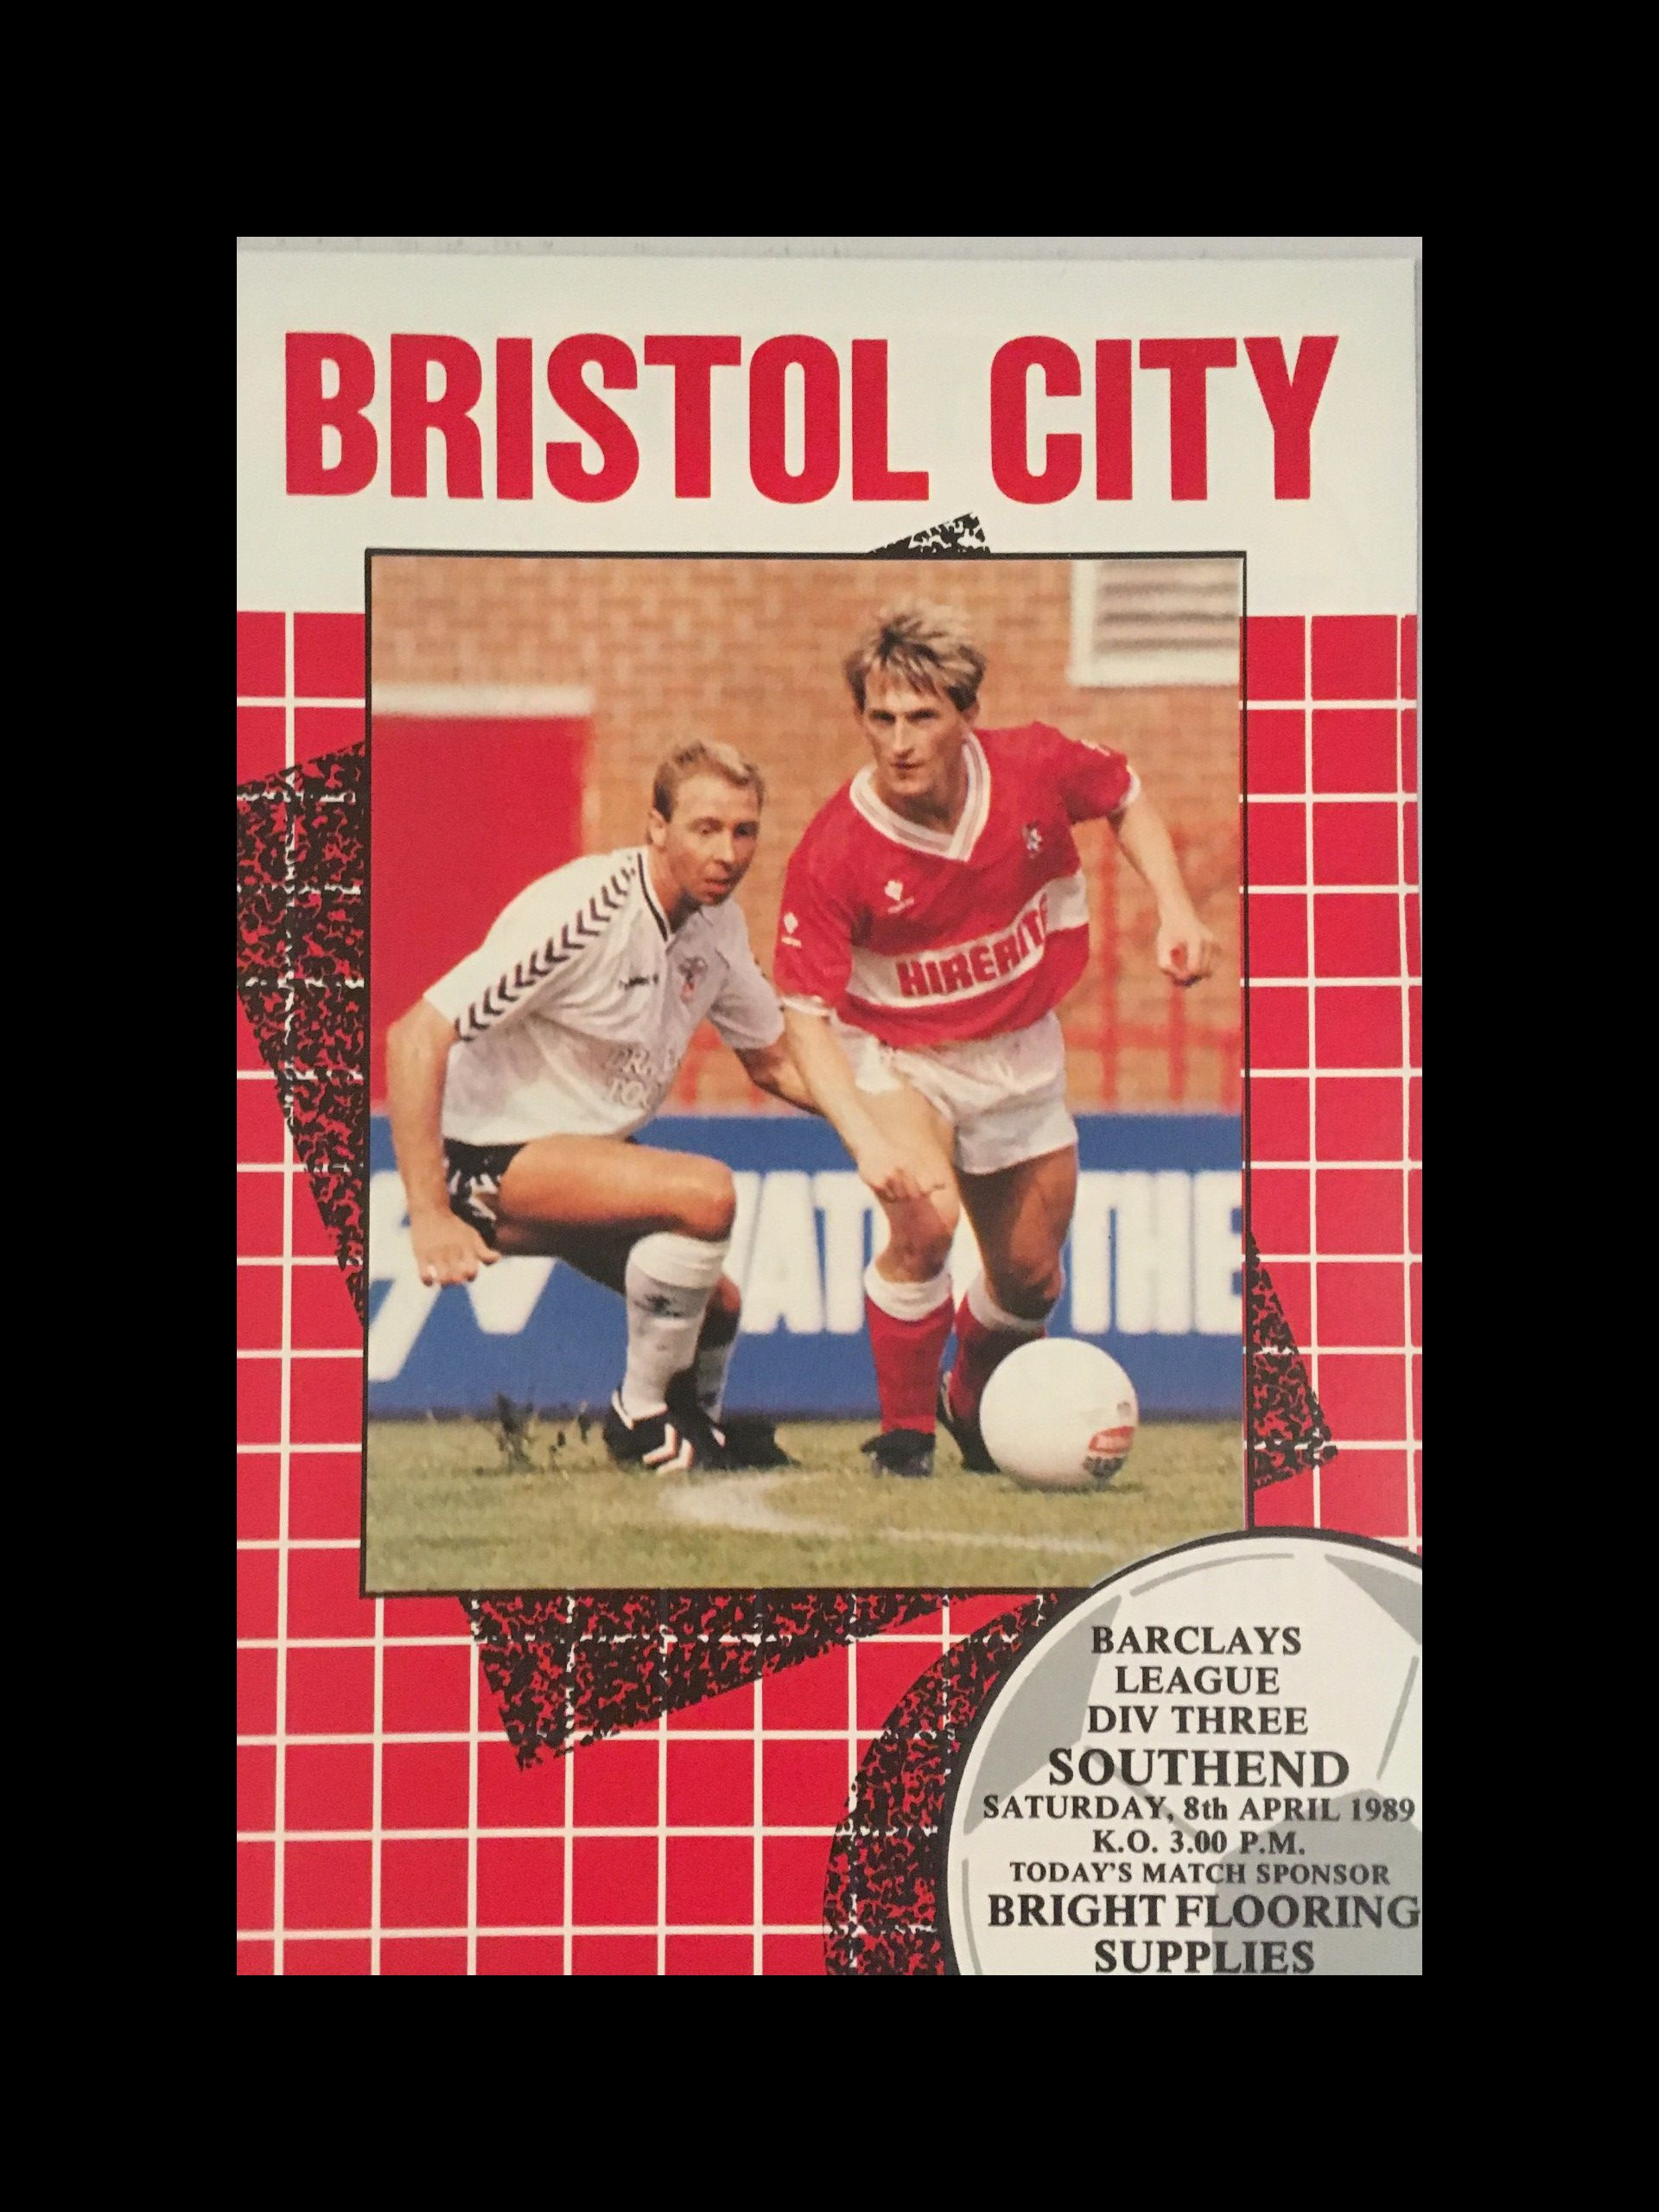 Bristol City v Southend United 08-04-1989 Programme